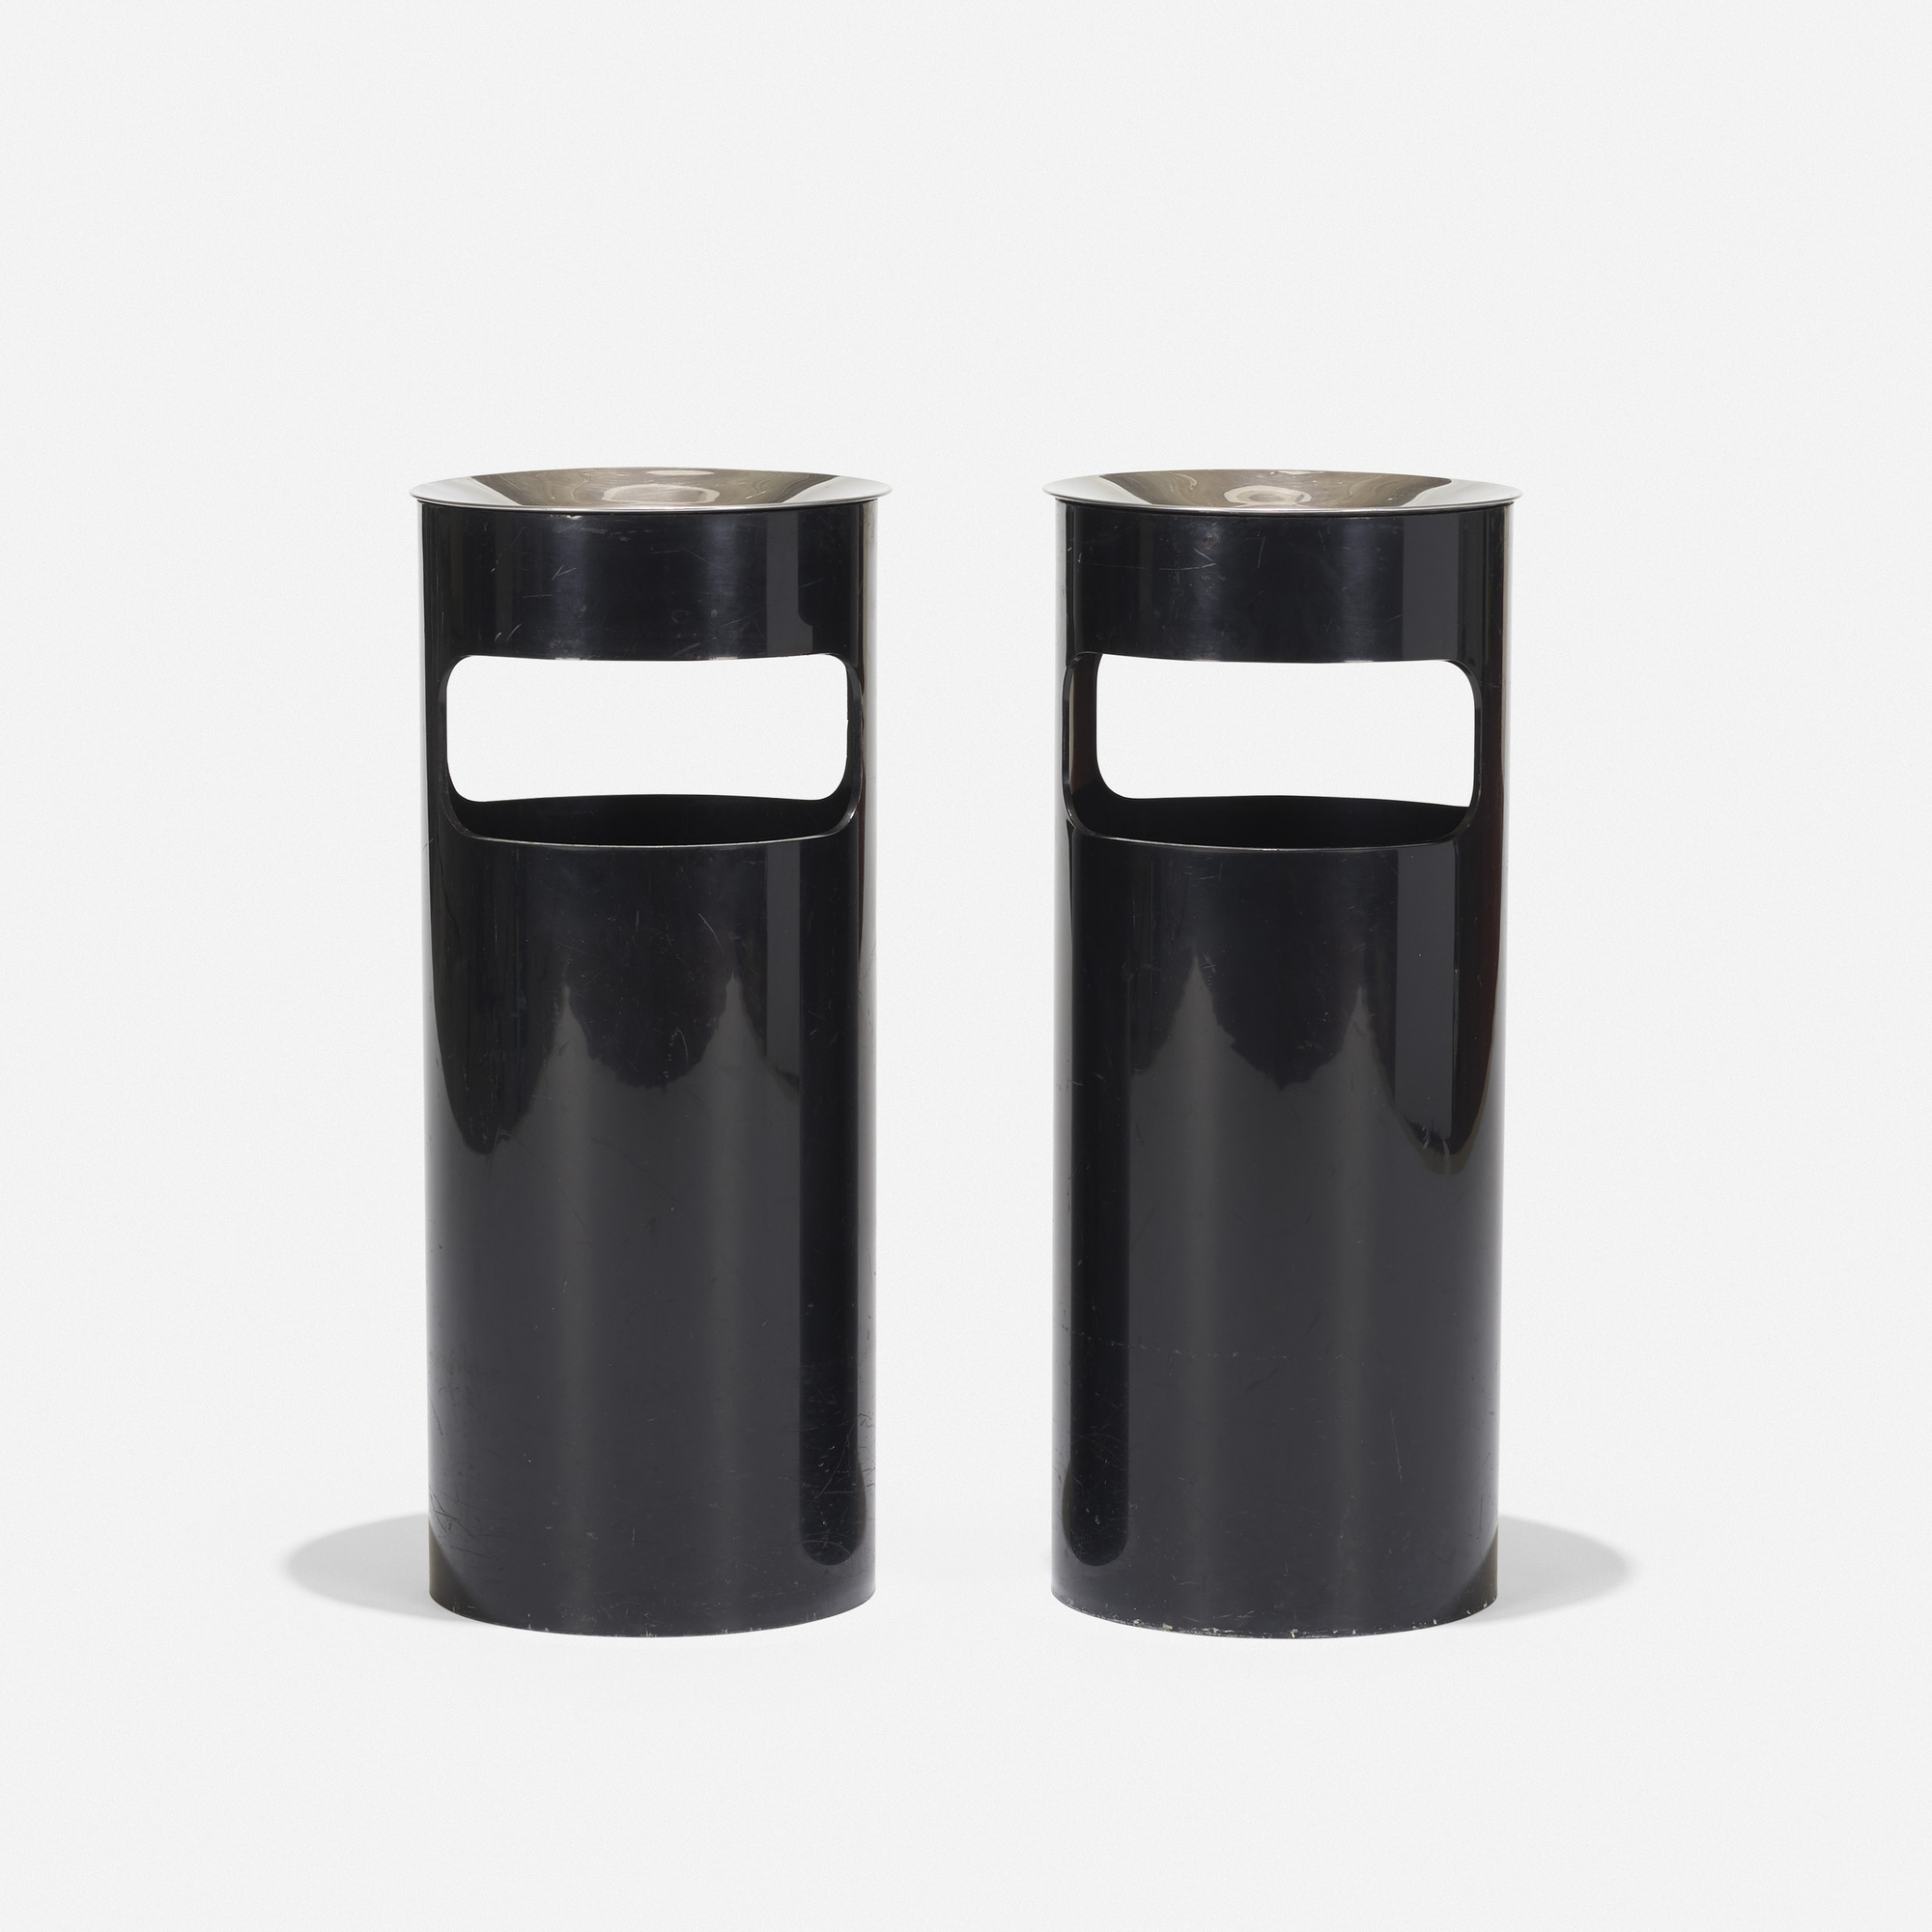 235: Gino Colombini / Umbrella Stands, pair (1 of 2)